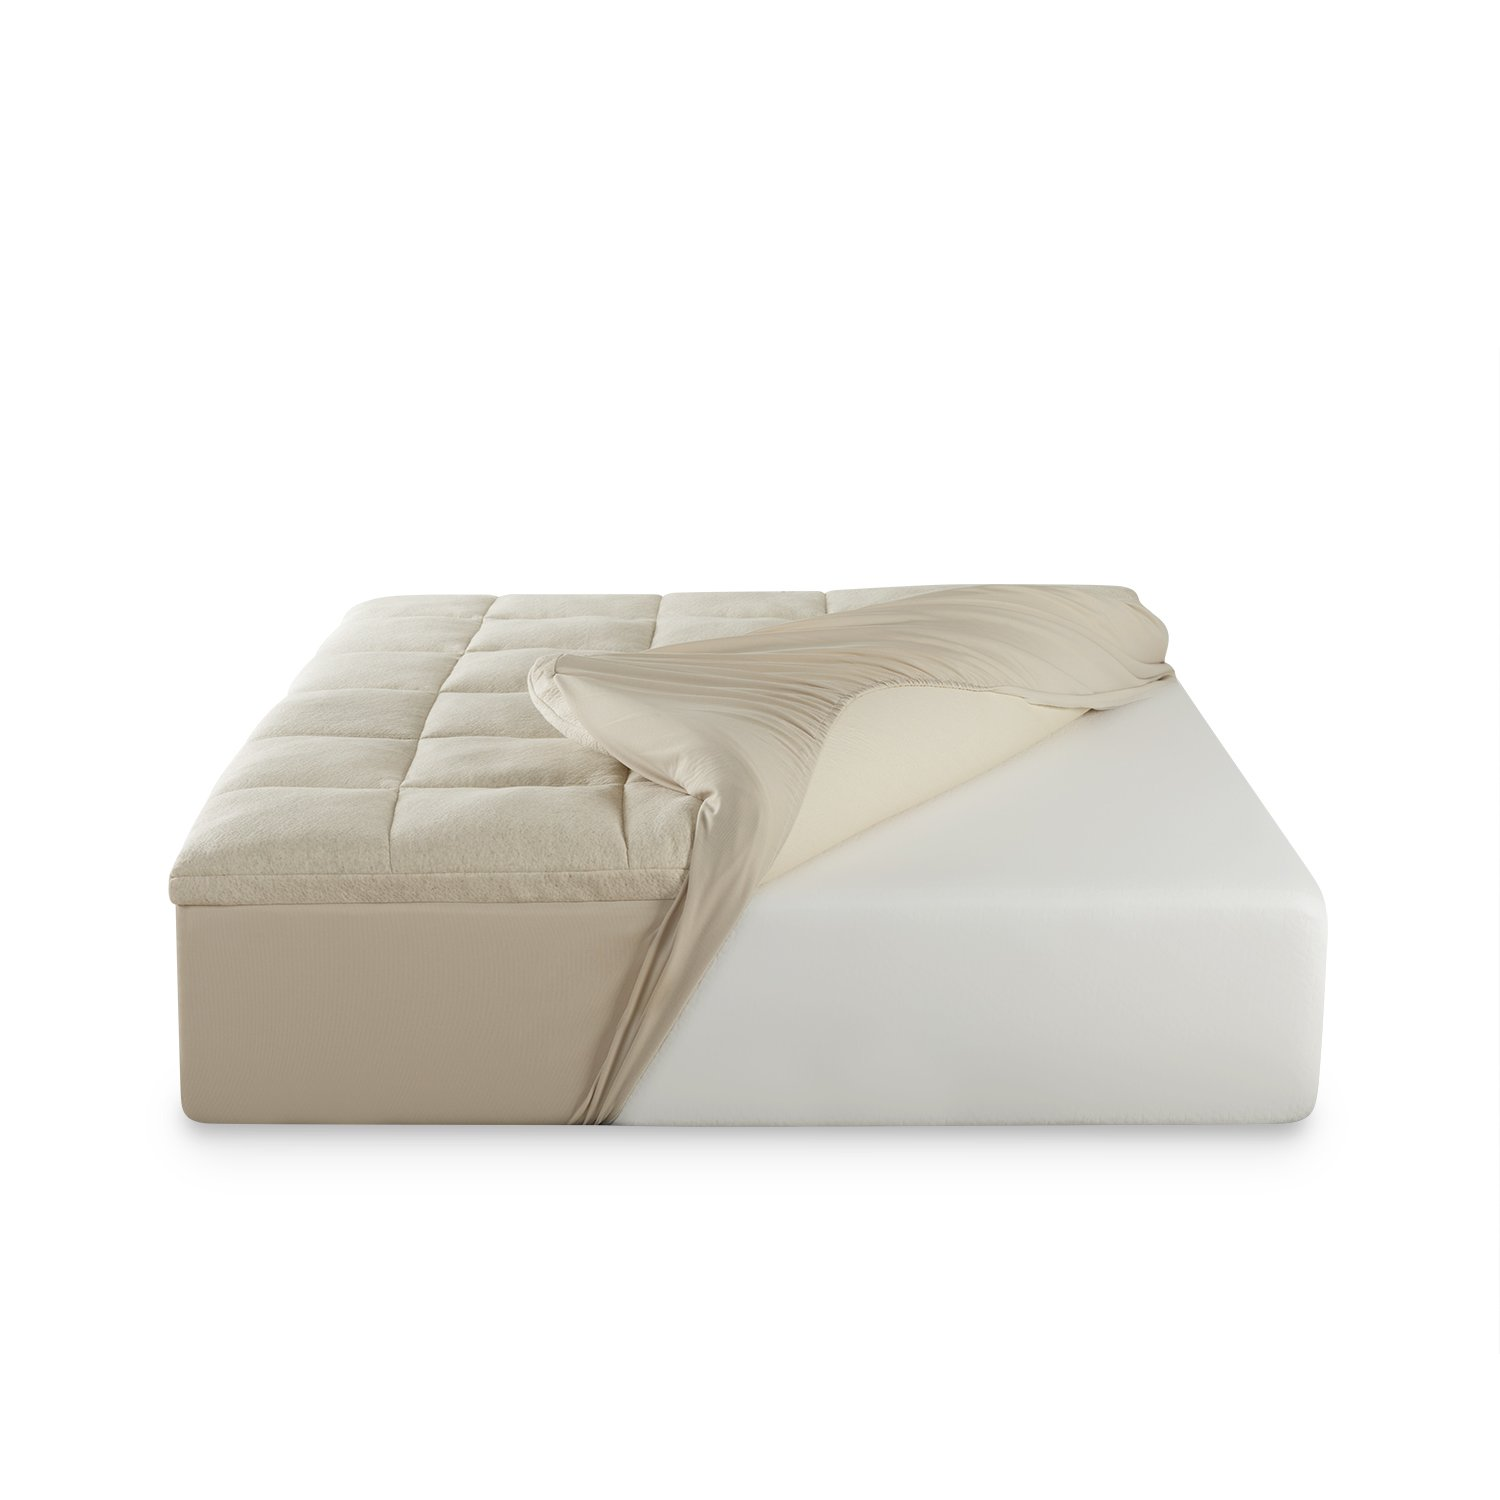 Keesa Mattress- eco friendly mattress